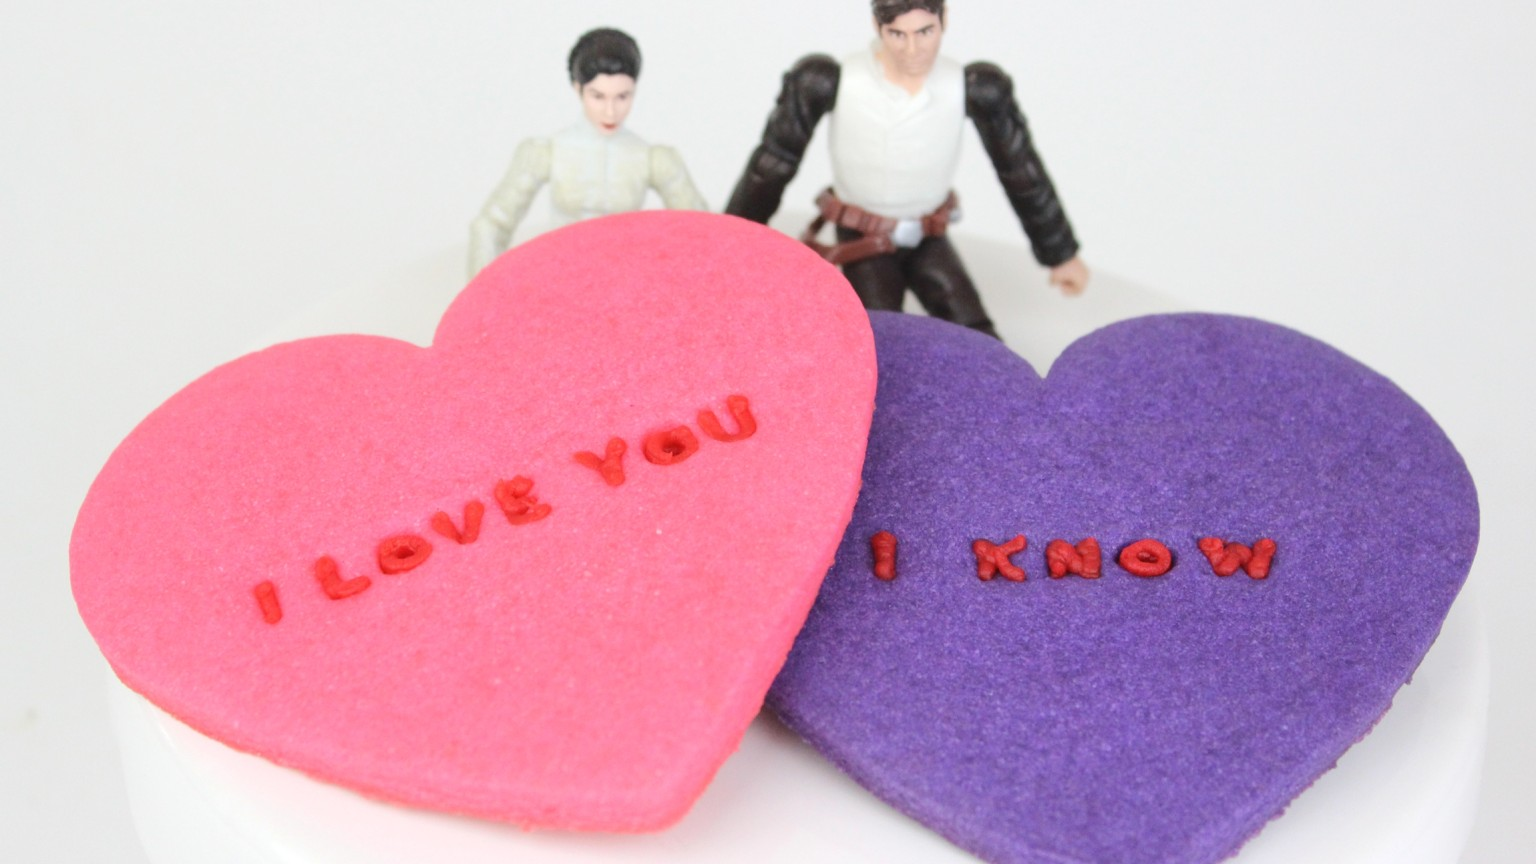 Conversation Heart Cookies with Leia and Han Figures